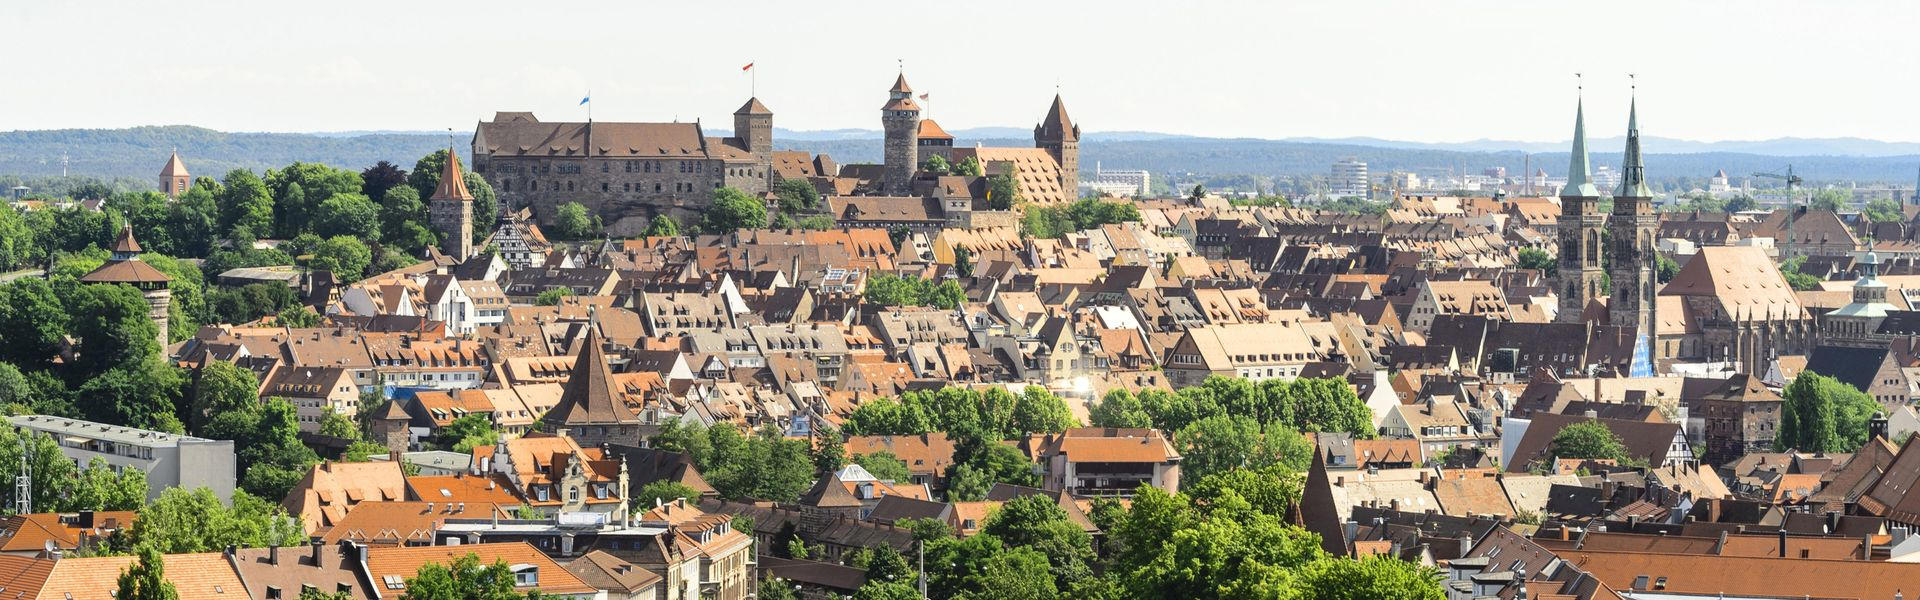 Nuremberg old town with castle